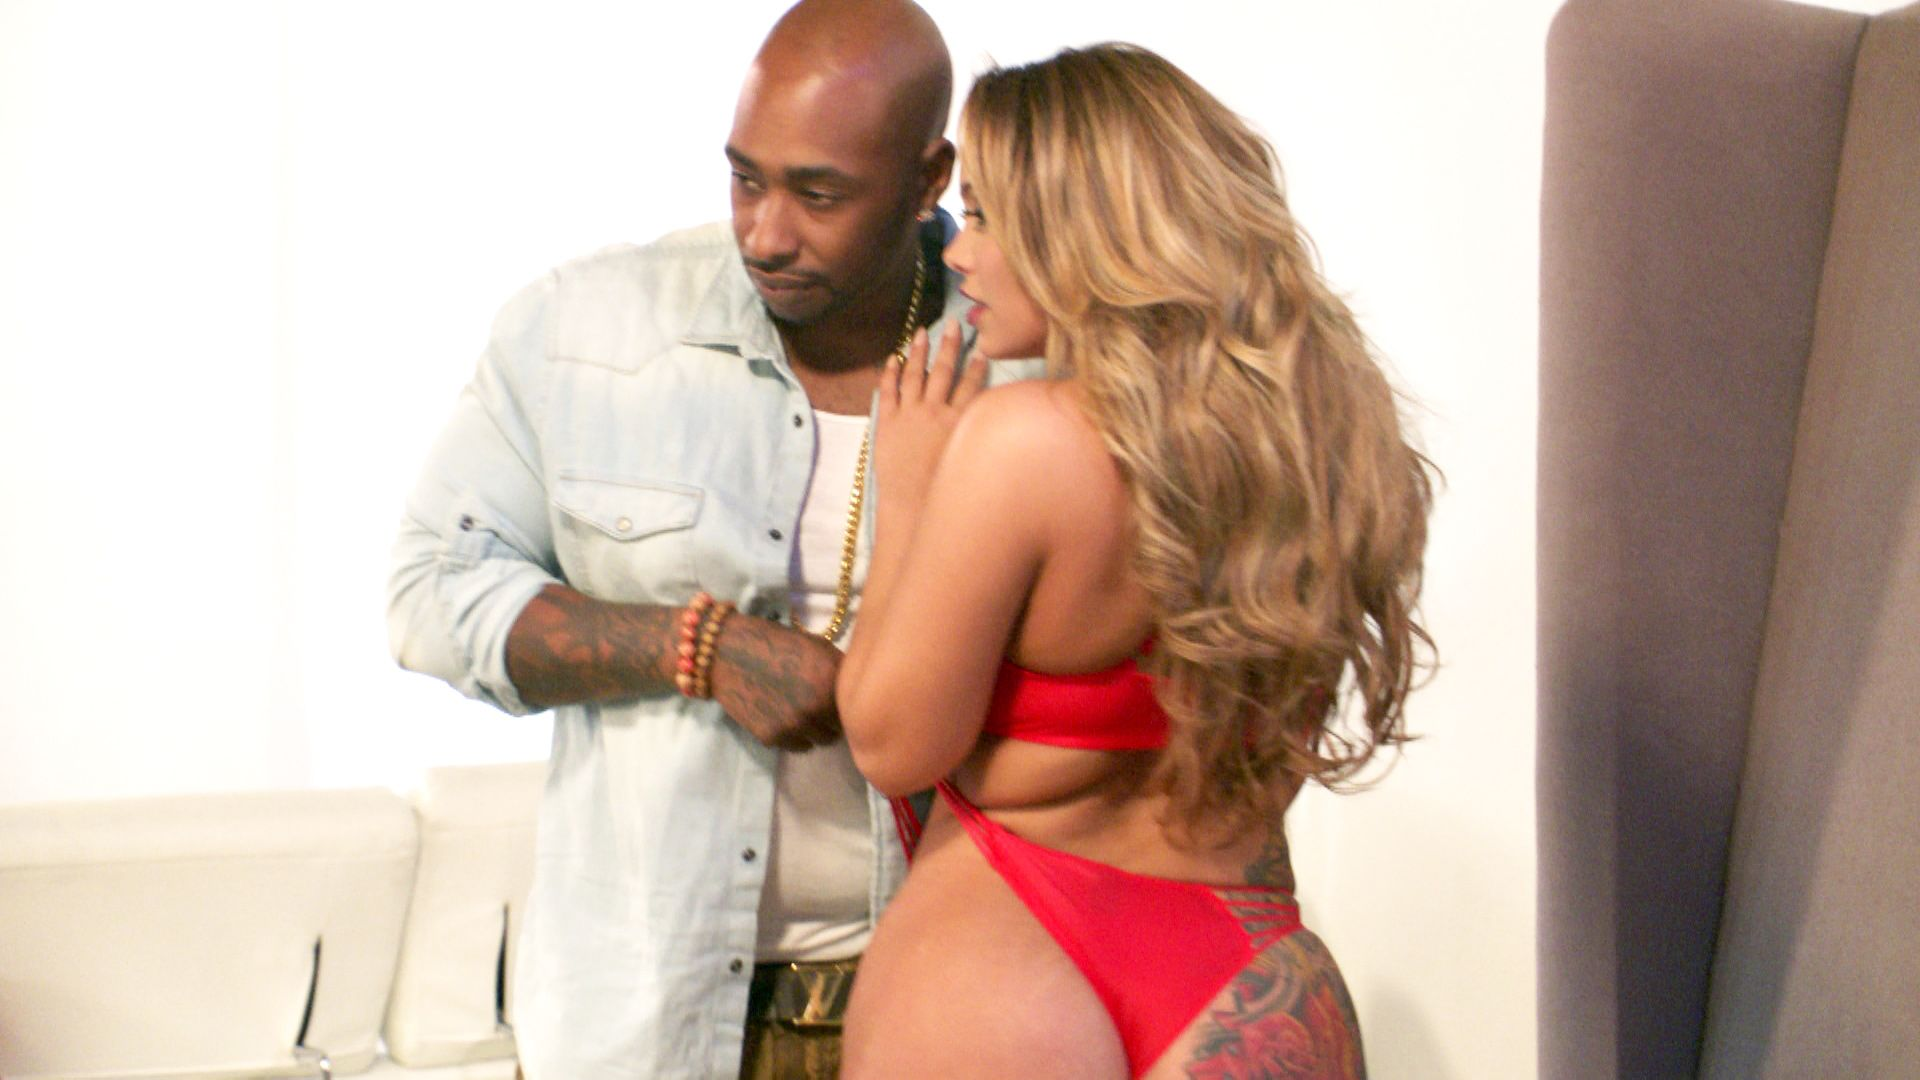 dutchess and caesar from black ink dating Now that everyone knows that former black ink crew couple dutchess and ceaser are broken up, folks are trying to figure out what the real reason behind the split is it seems as the reason's.